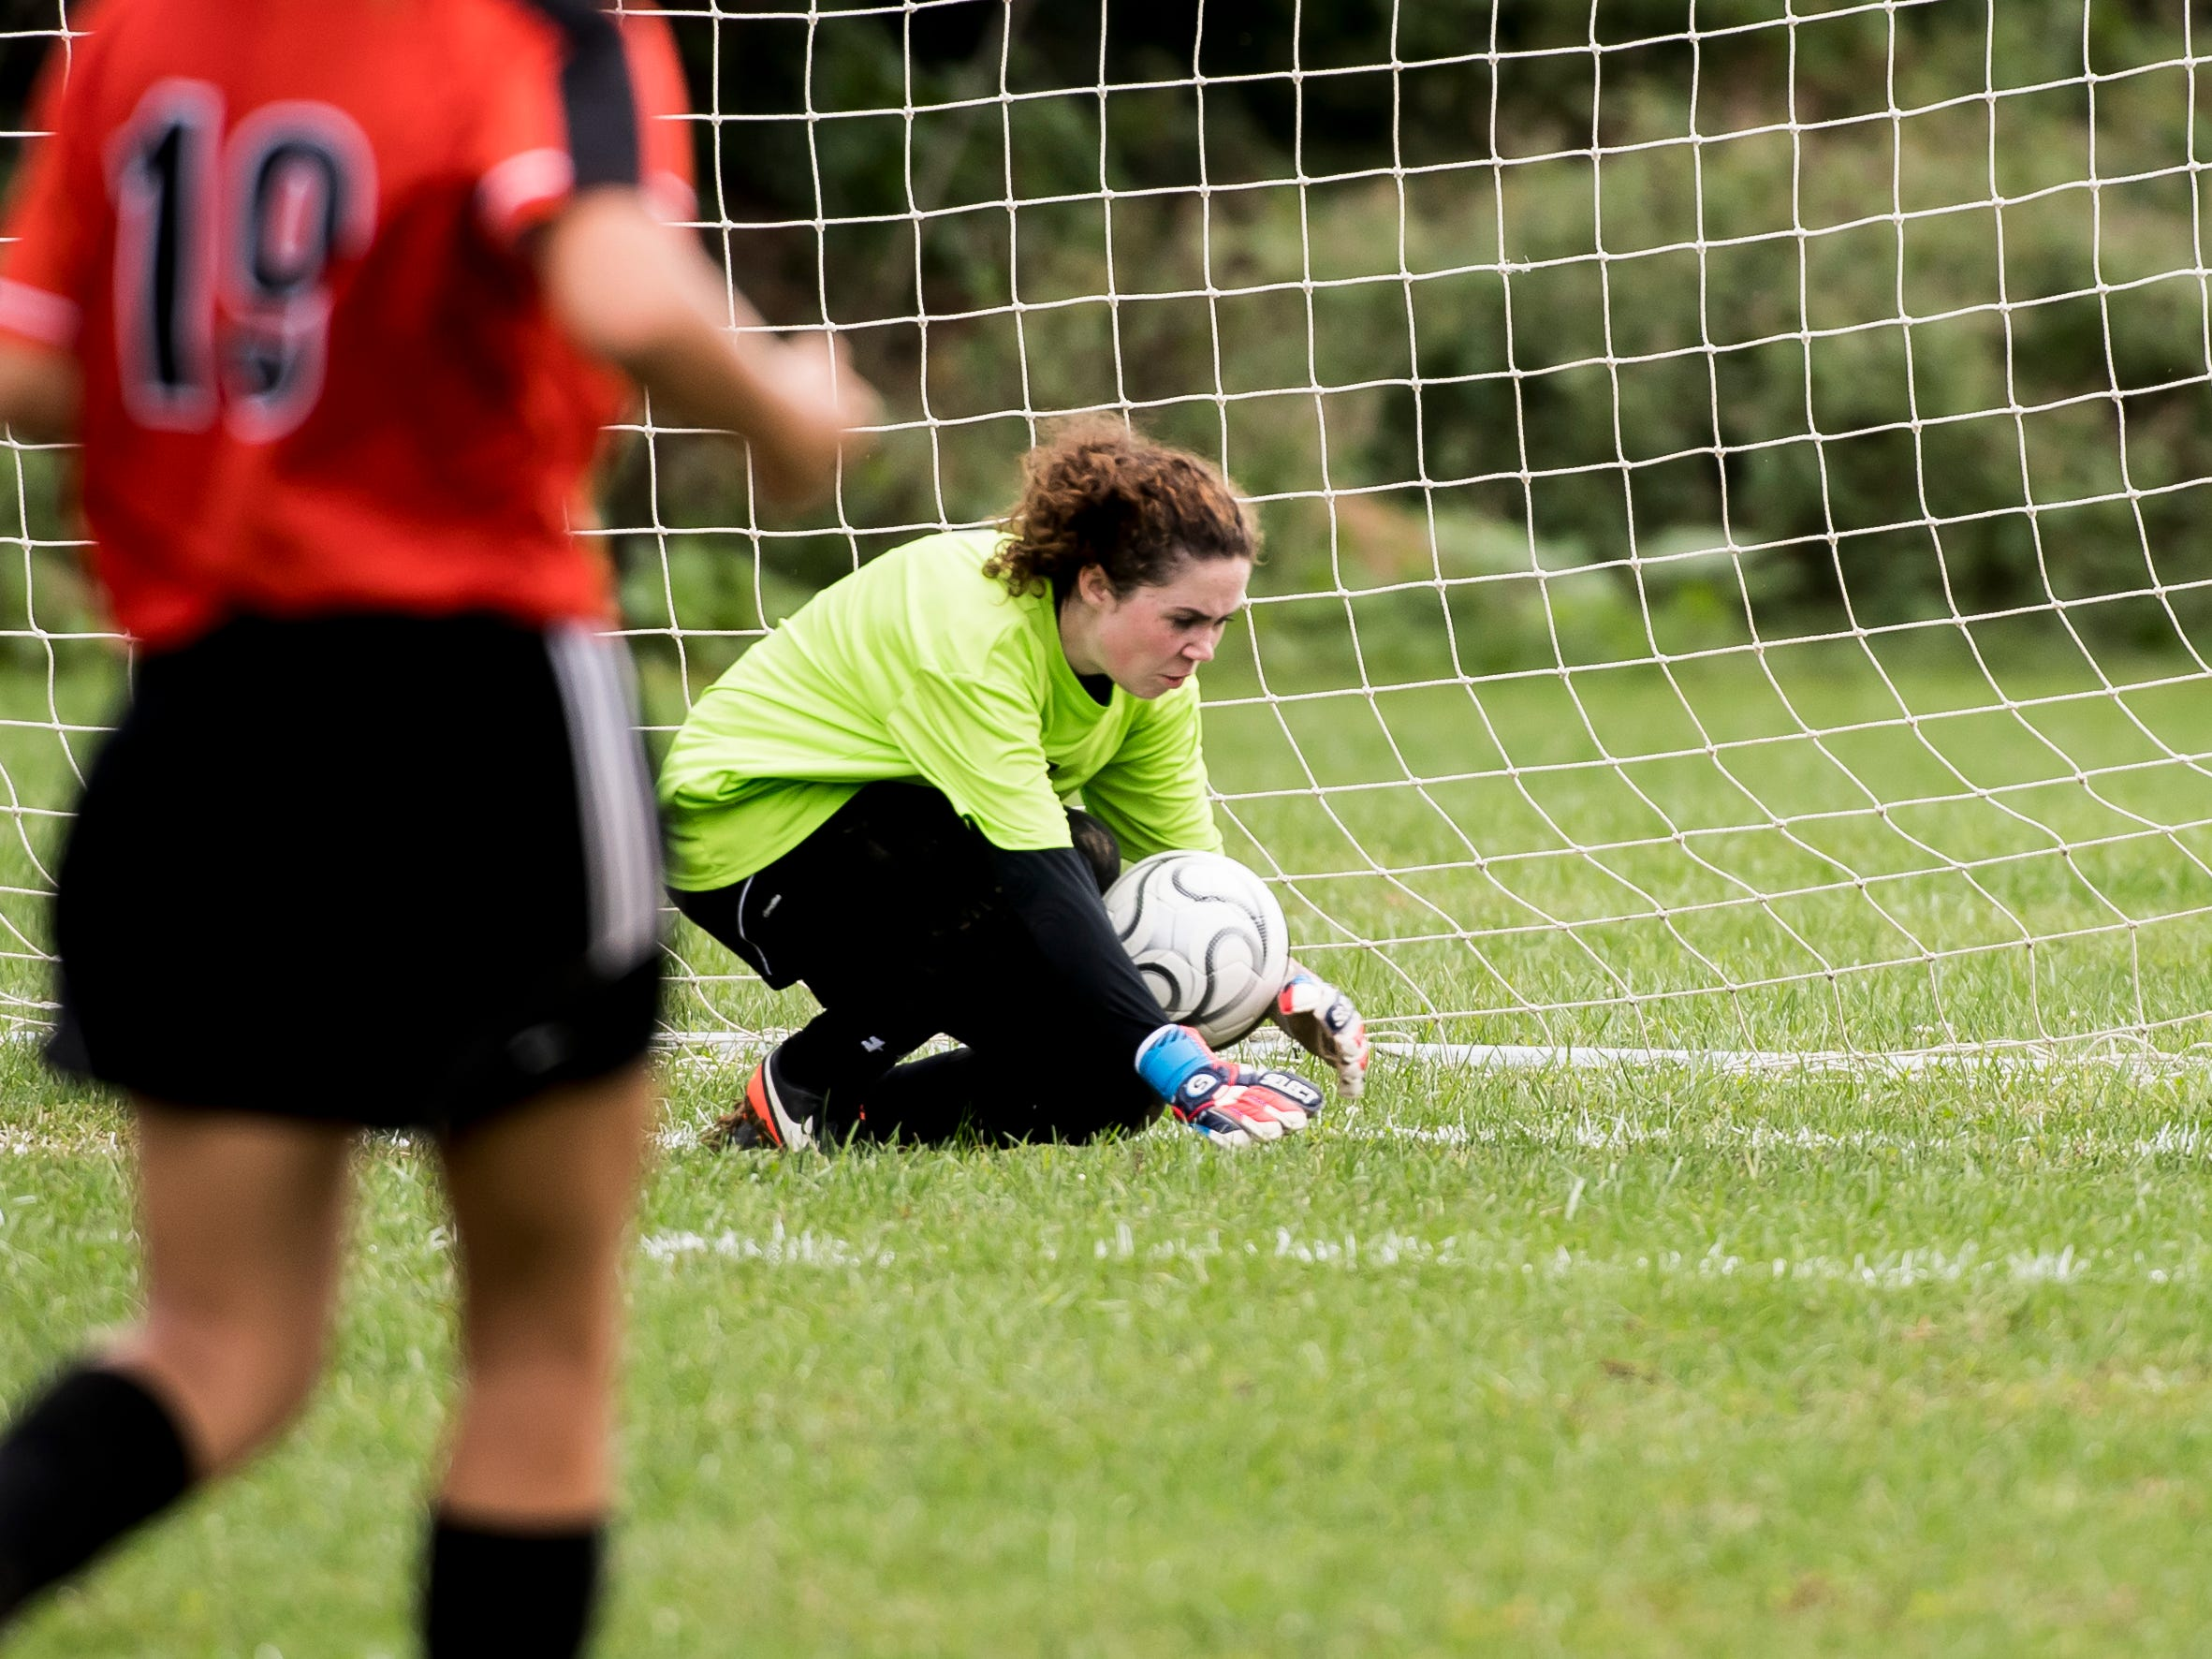 Hanover goalkeeper Sabrina Hobson blocks a shot during play against Fairfield on Thursday, September 13, 2018. The Knights beat the Nighthawks 19-0.